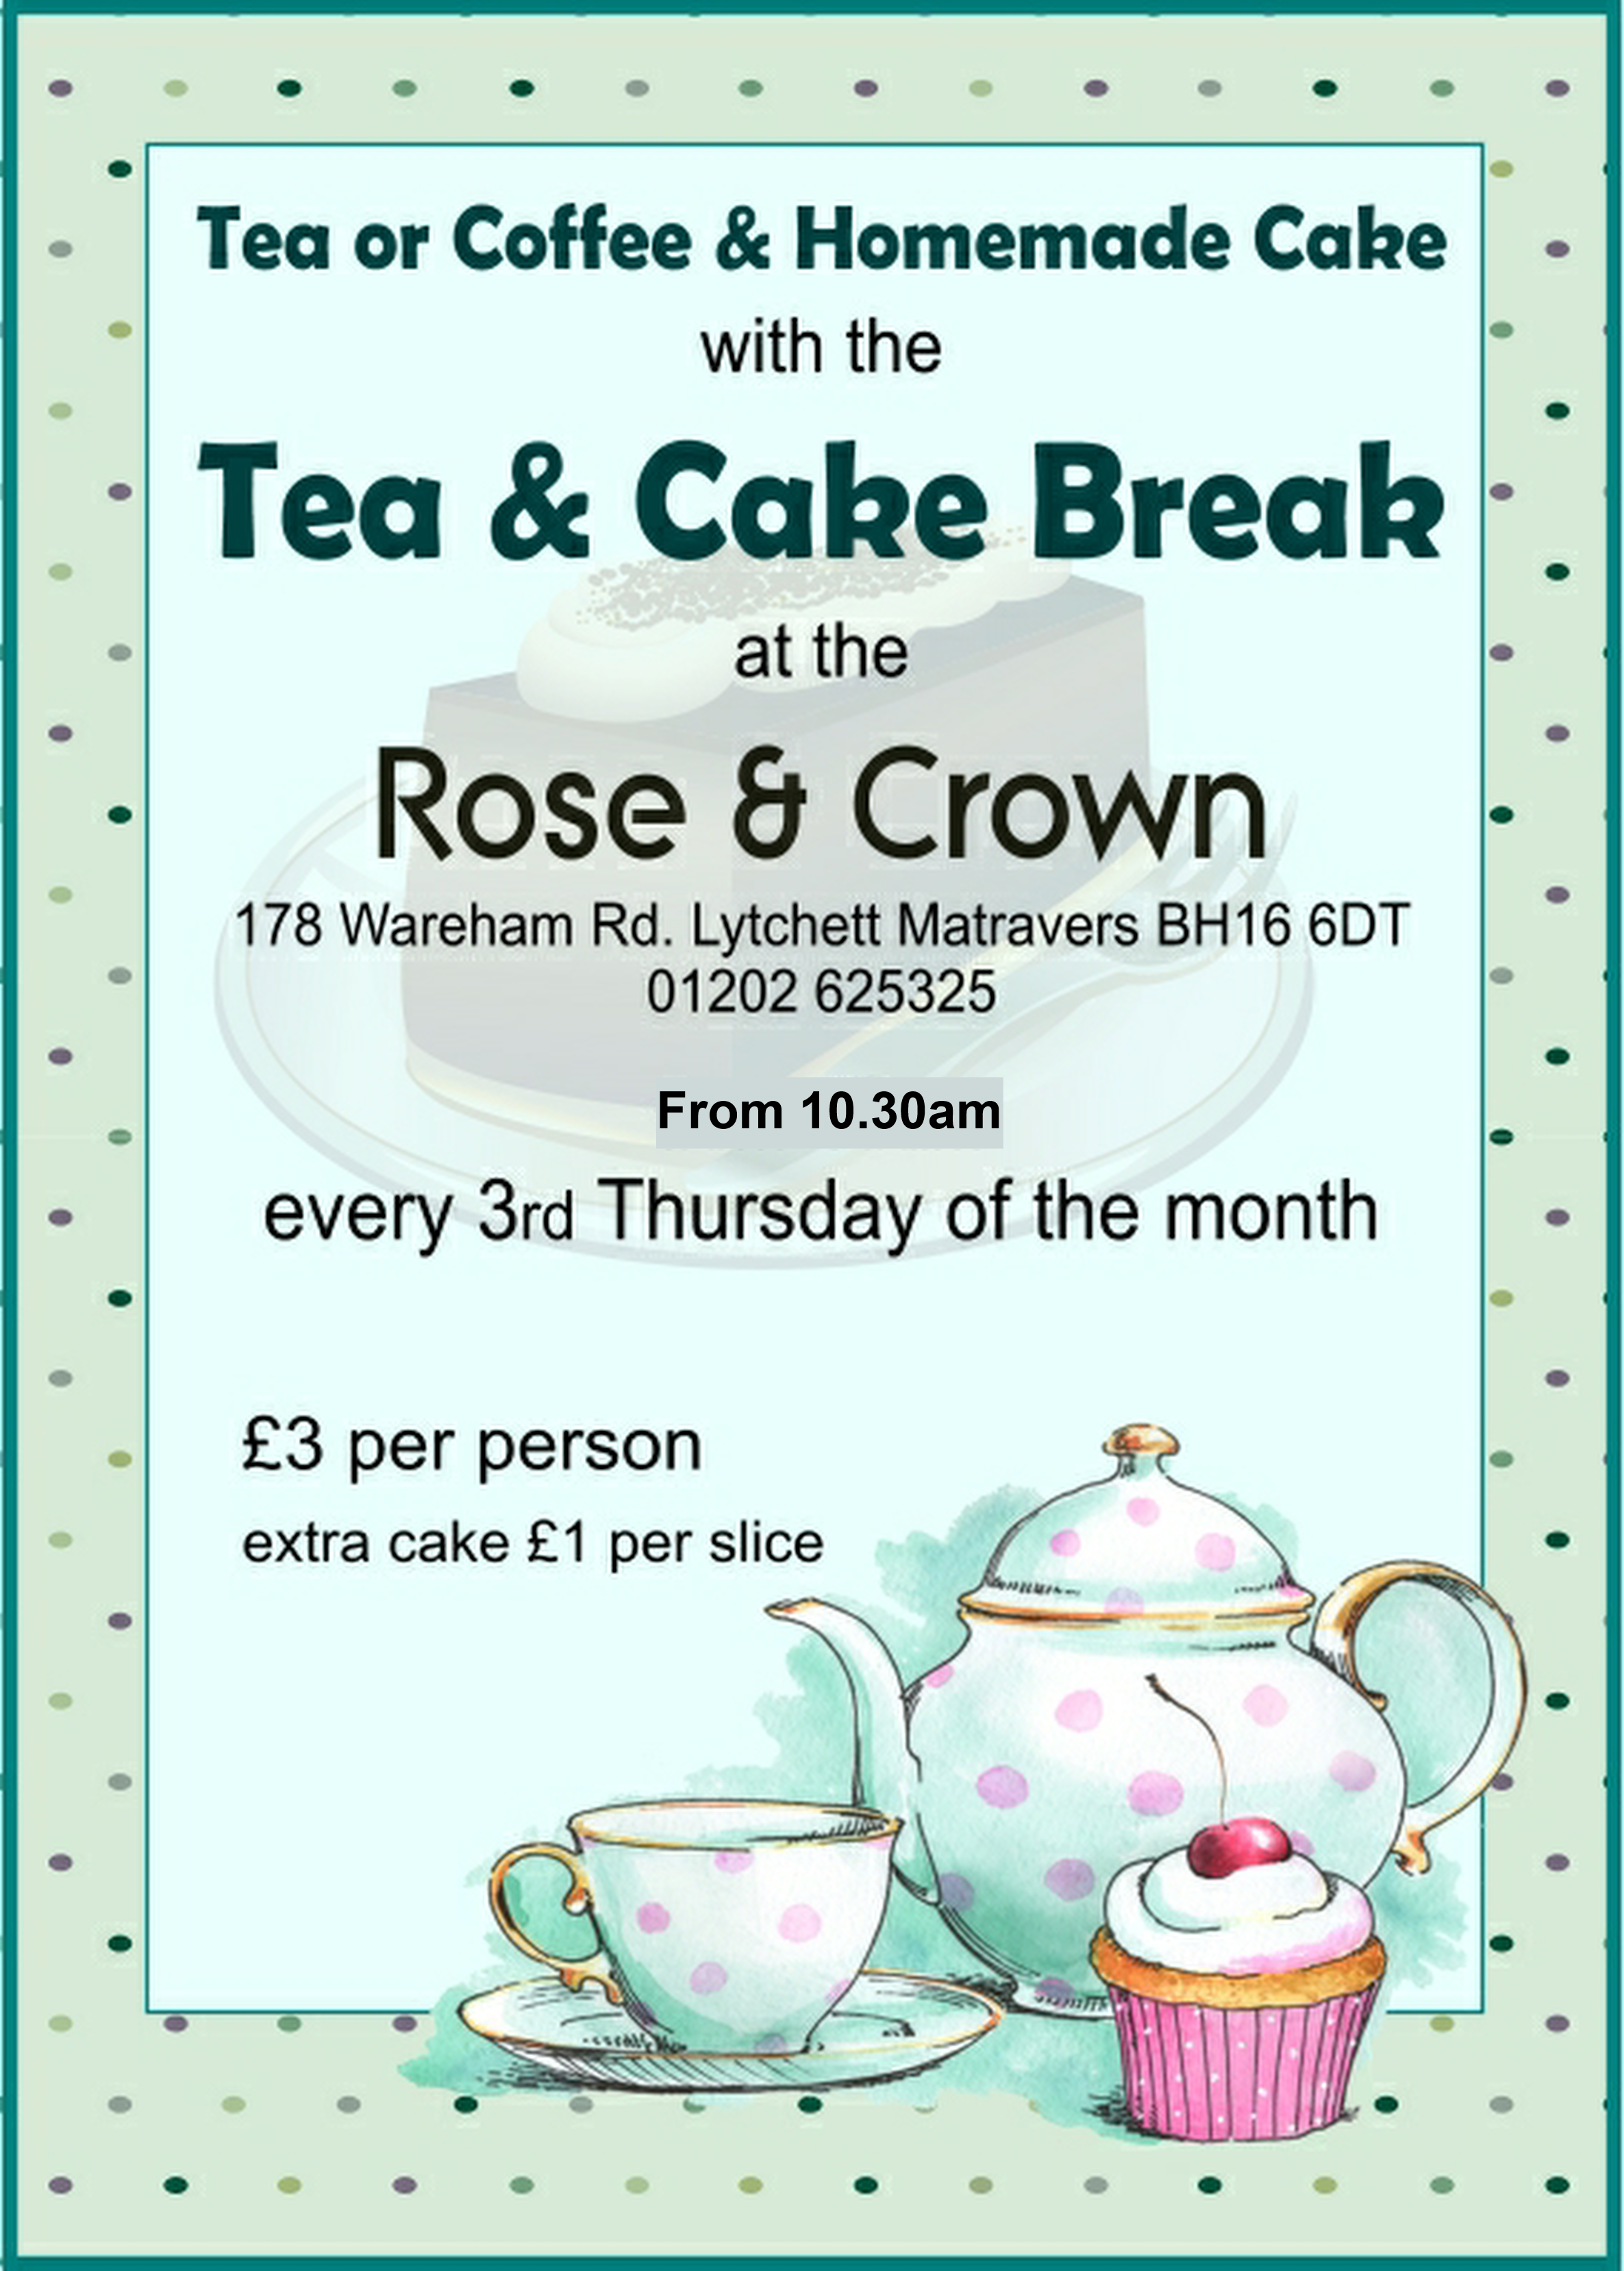 Tea and Cake Break - Rose & Crown,Lytchett